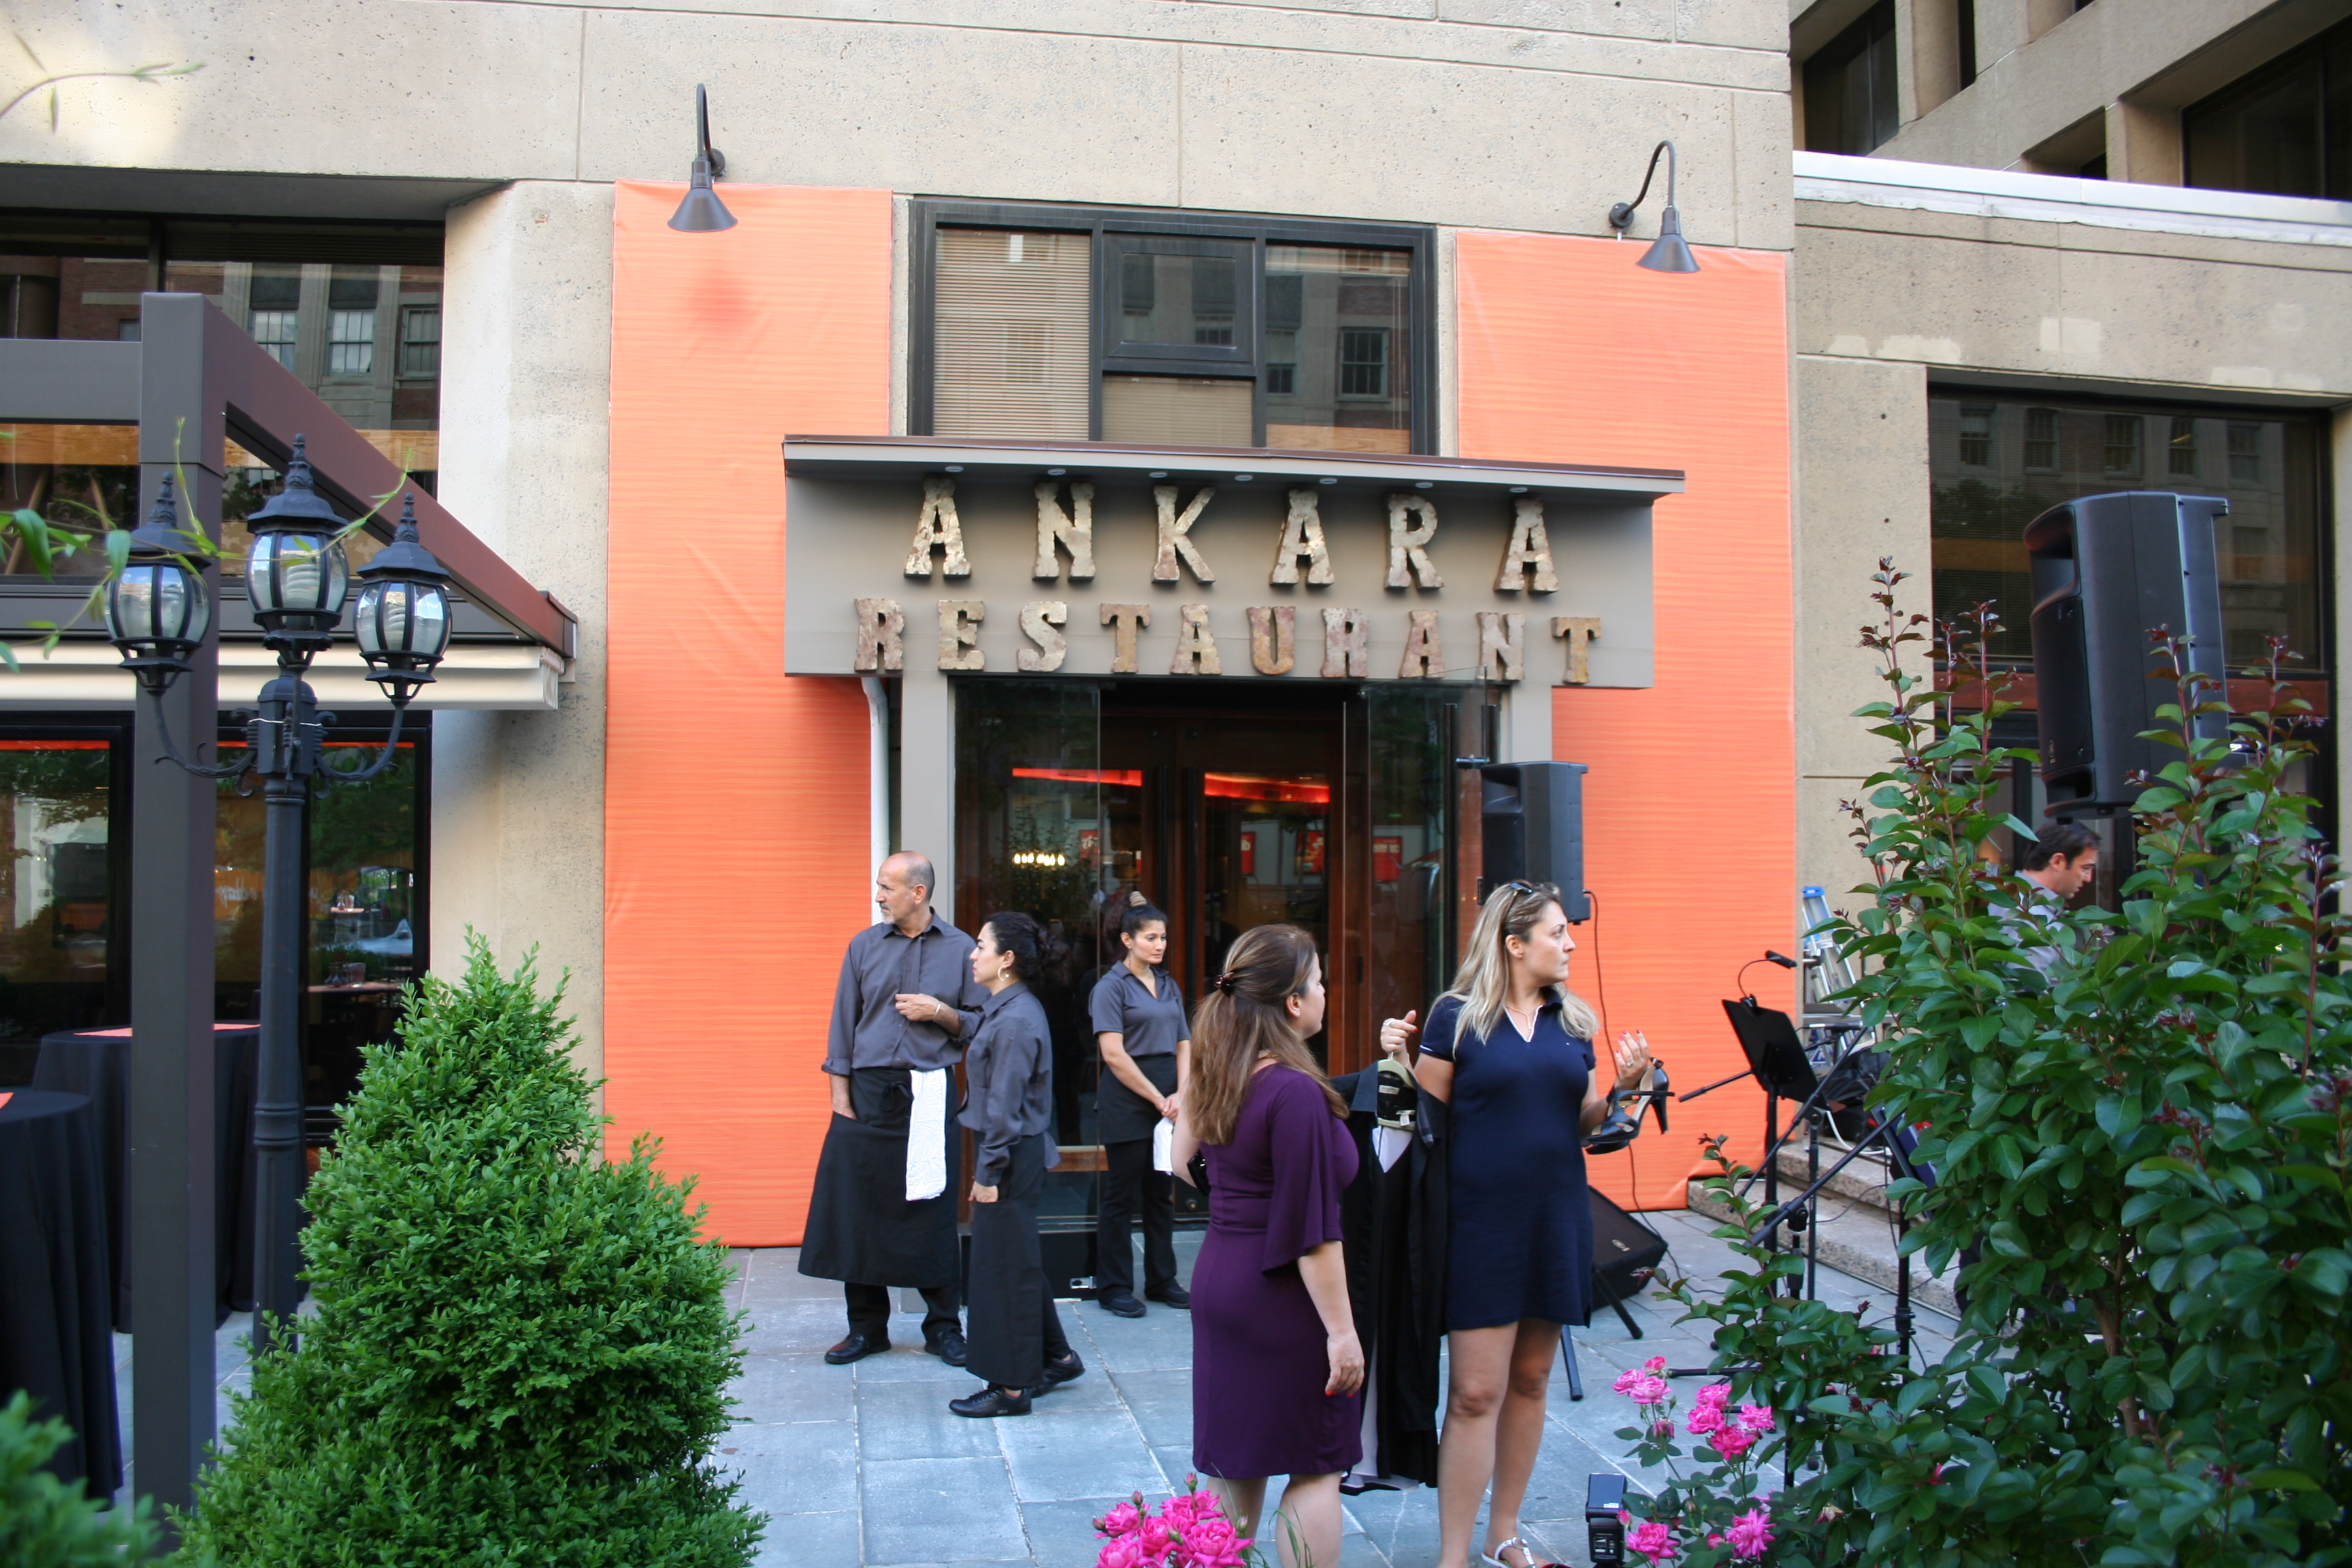 Ankara Turkish restaurant will begin serving weekend brunch June 13. (Photo: Mark Heckathorn/DC on Heels)